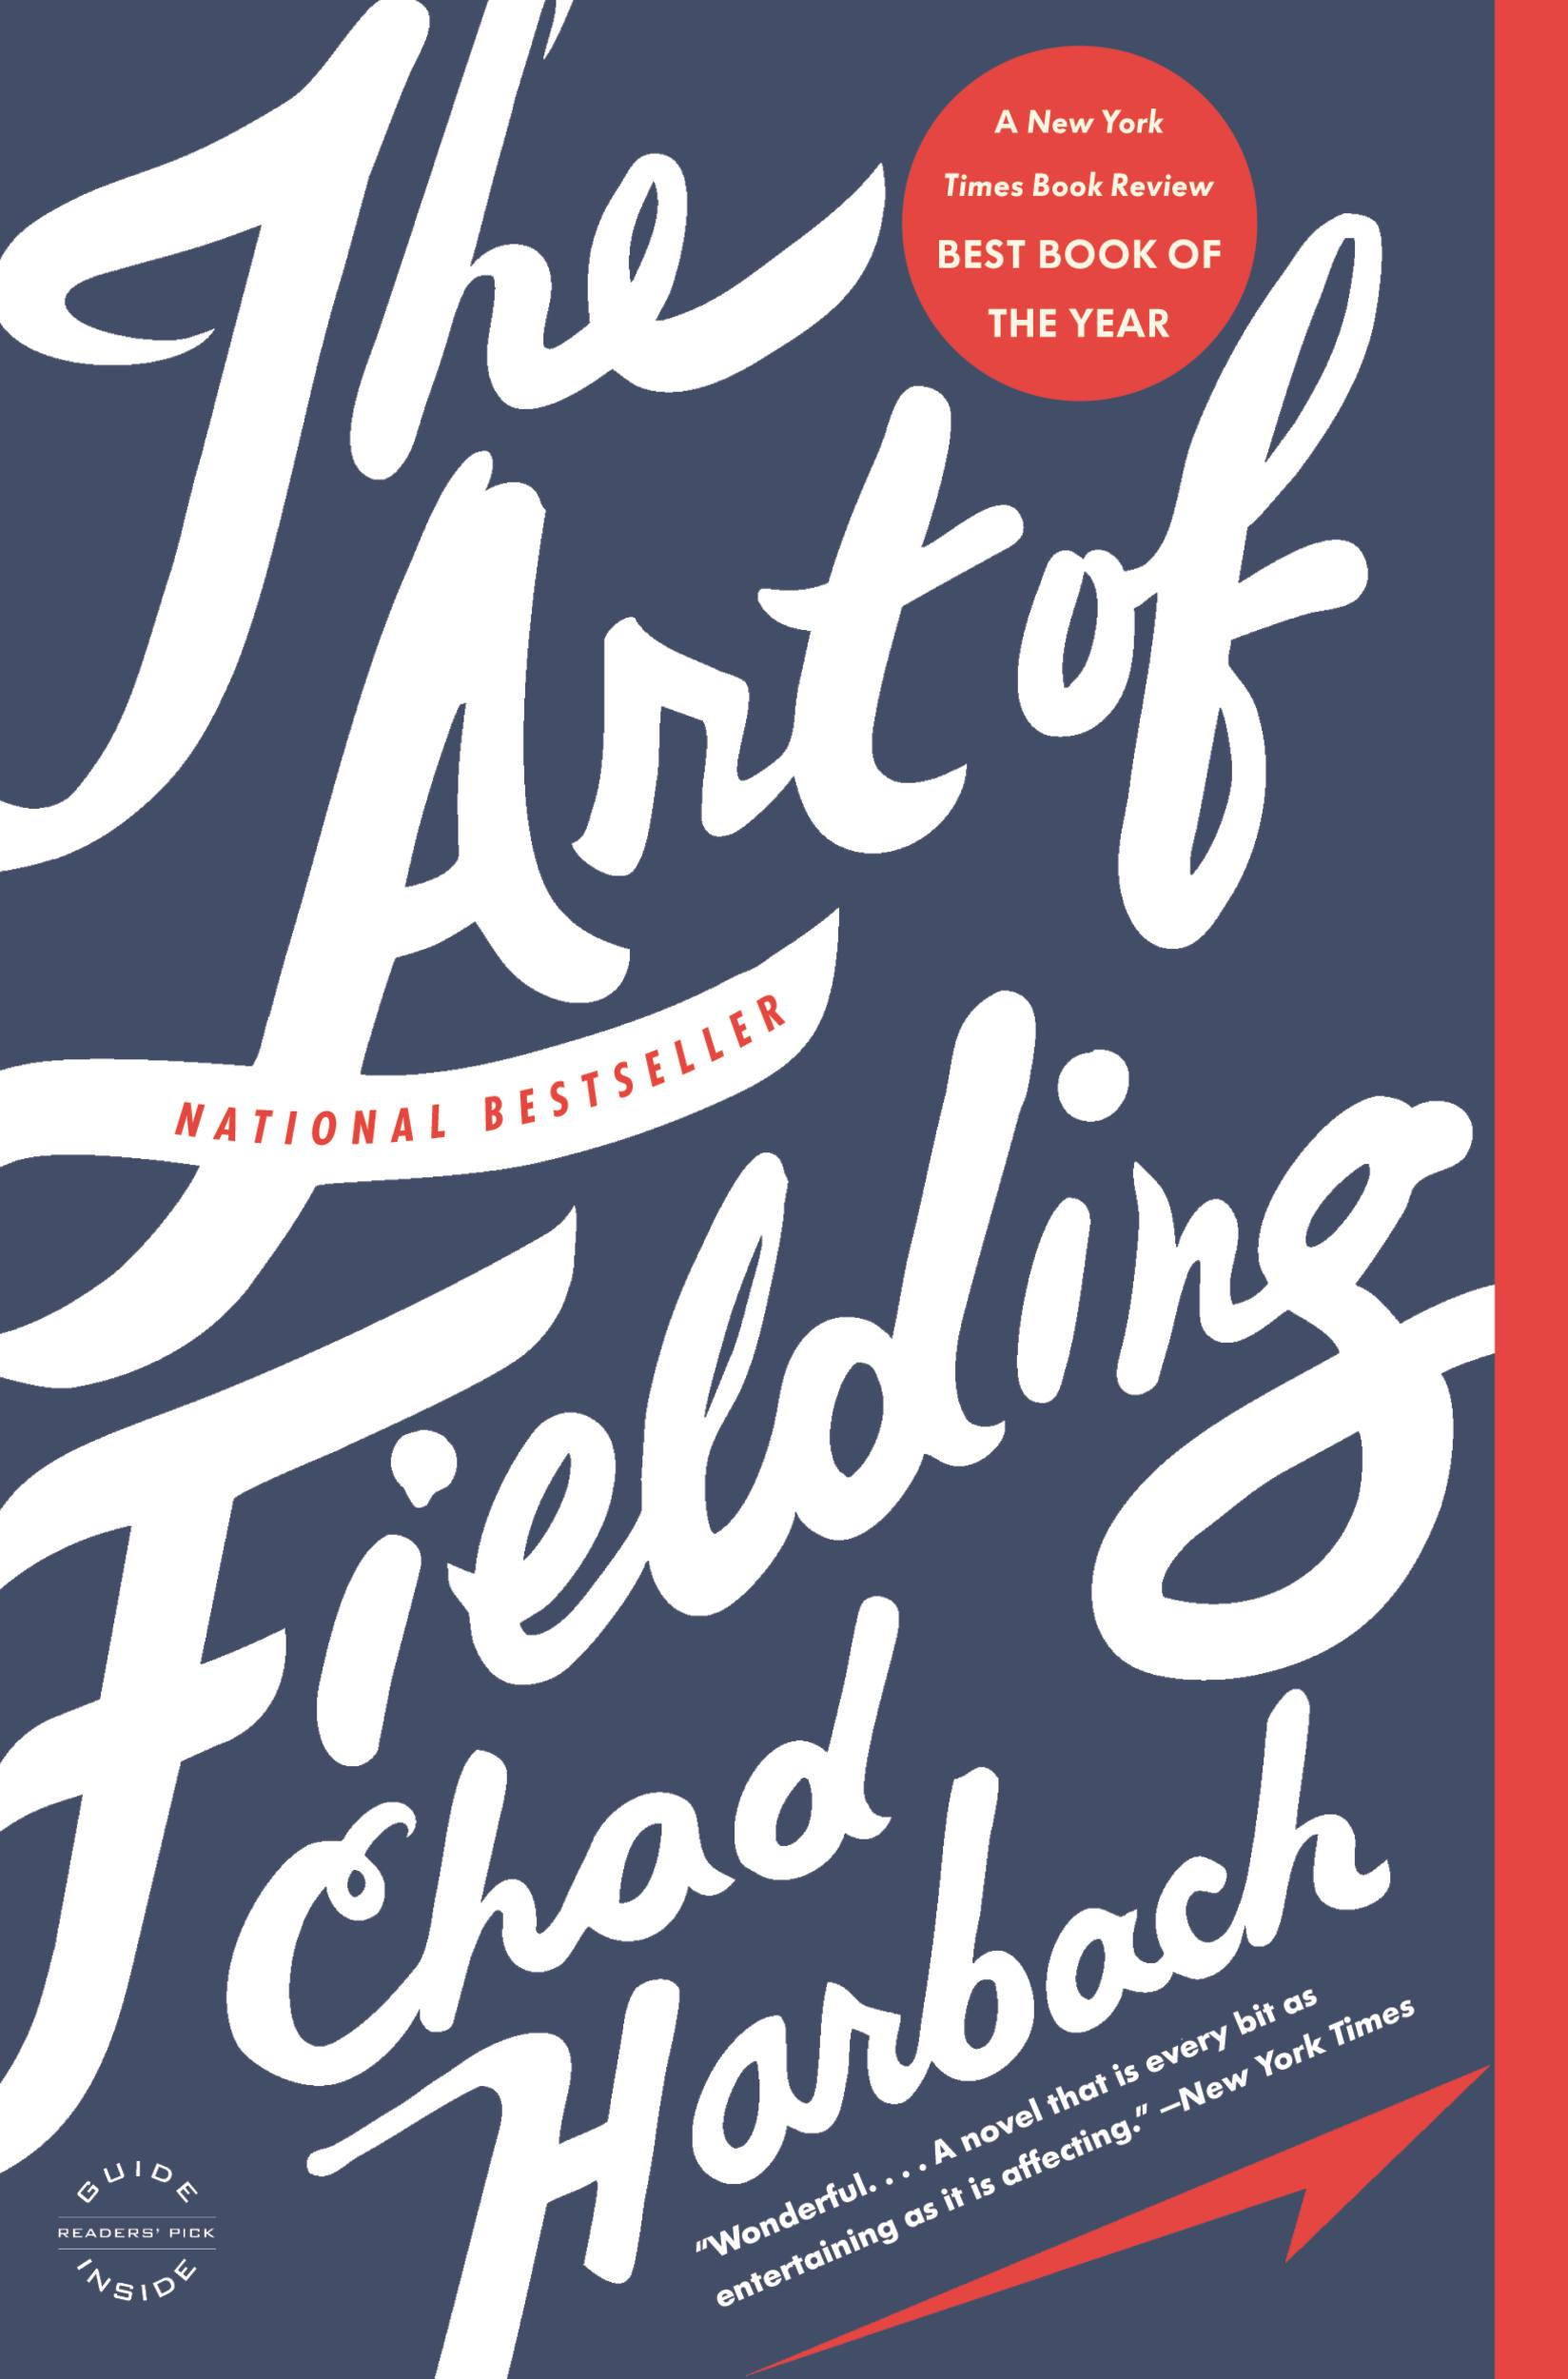 The Art of Fielding By: Chad Harbach